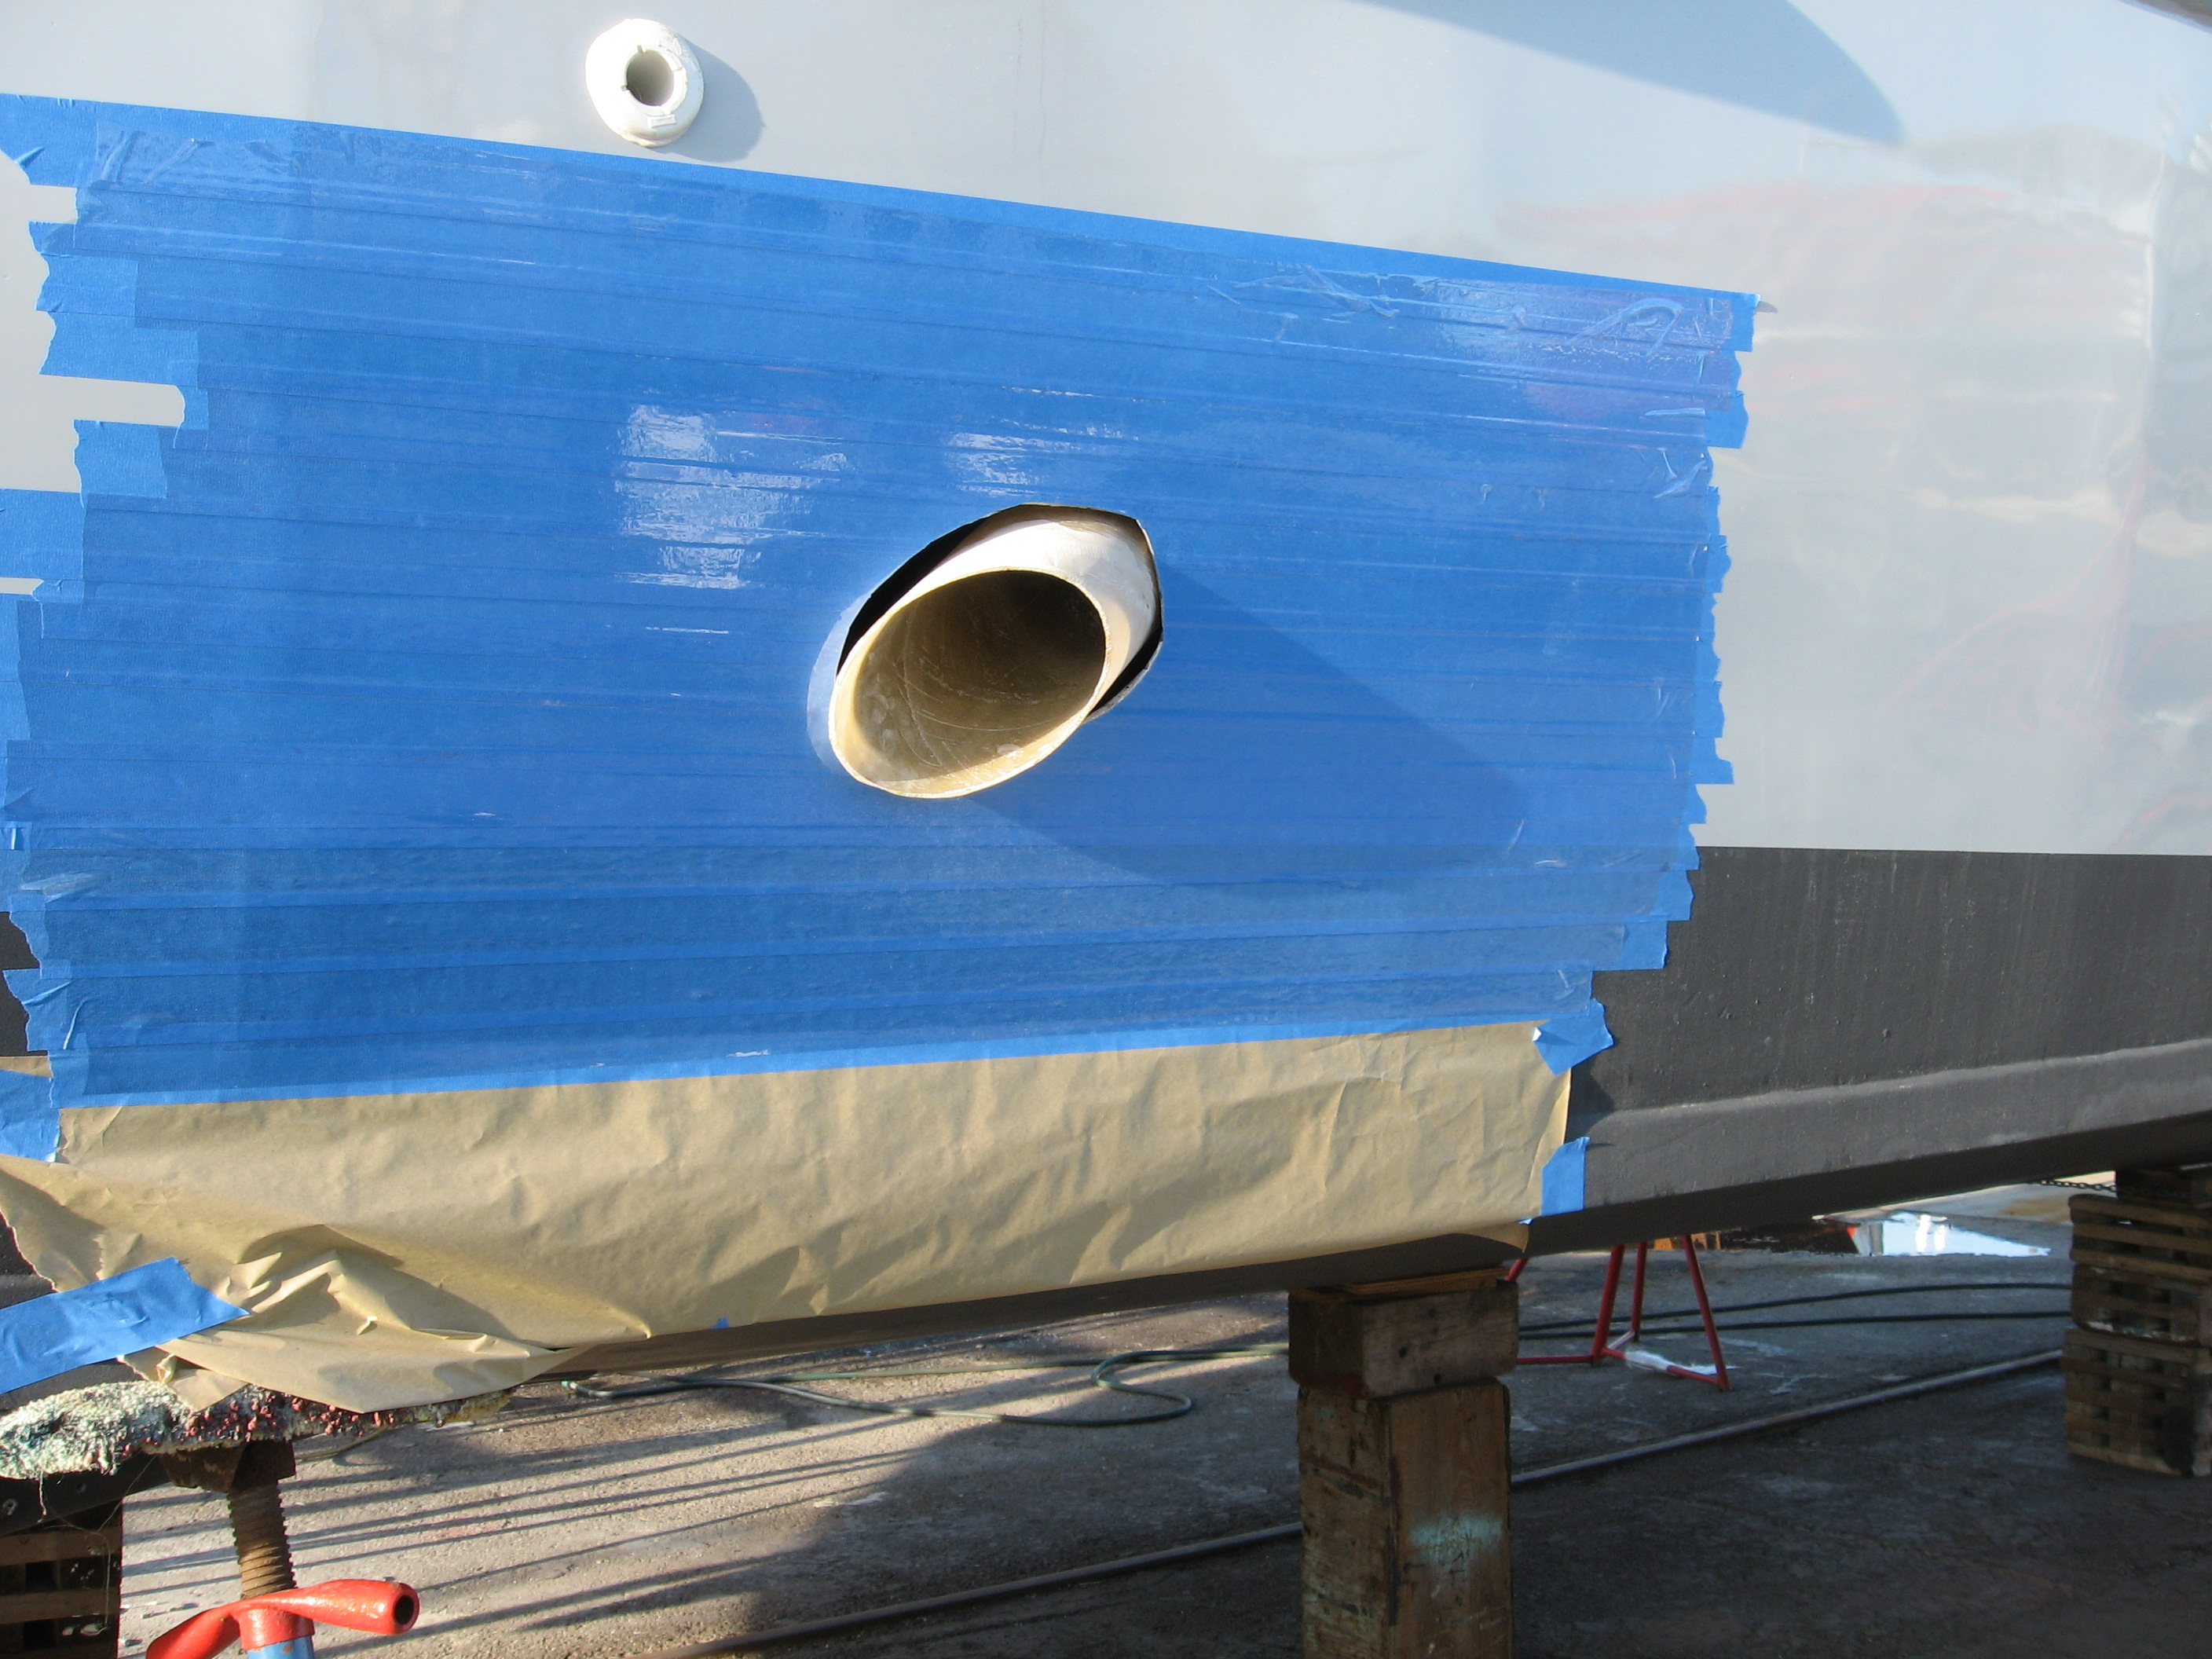 Side exhaust outlet tube mock-up - You need to protect the boat's LP paint job!!